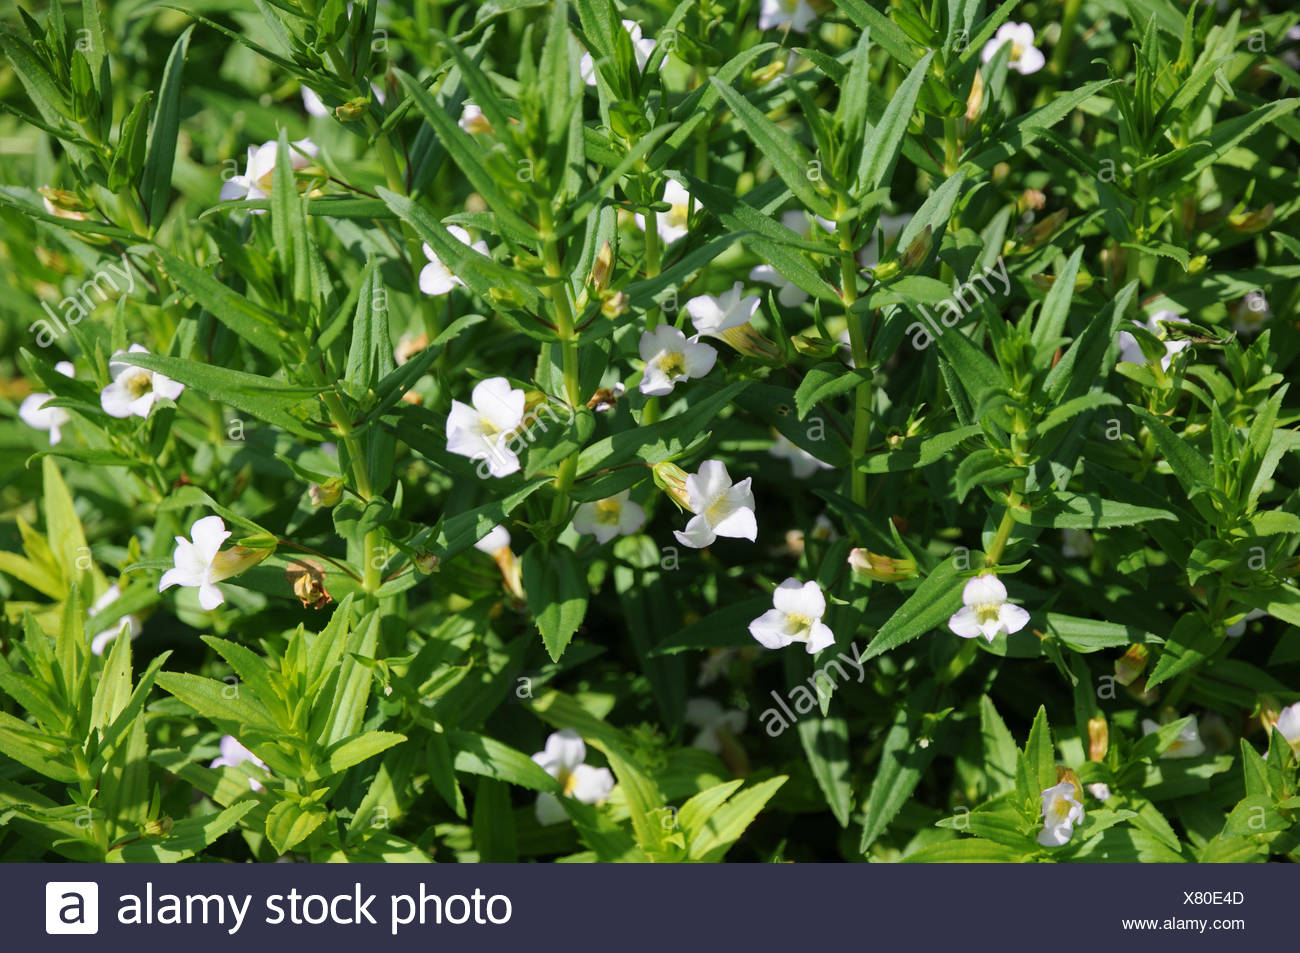 Herb of grace - Stock Image